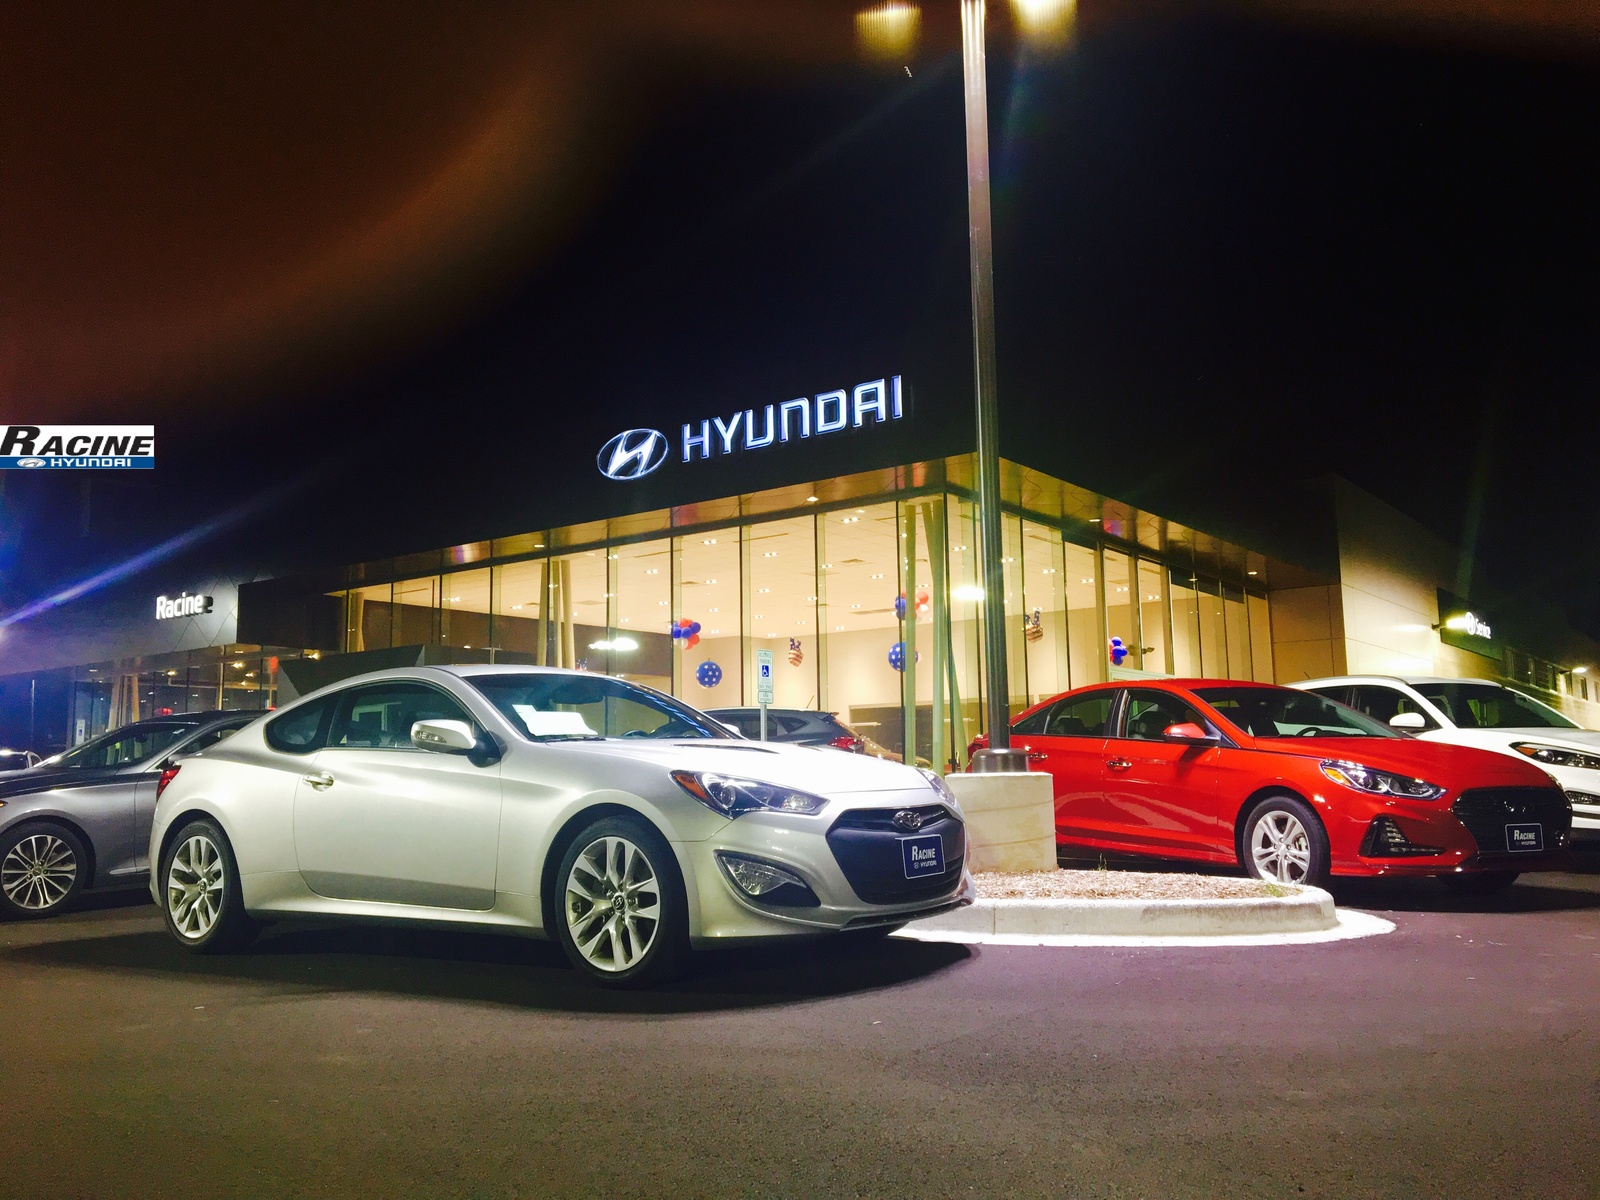 racine hyundai mount pleasant wi read consumer reviews browse used and new cars for sale. Black Bedroom Furniture Sets. Home Design Ideas